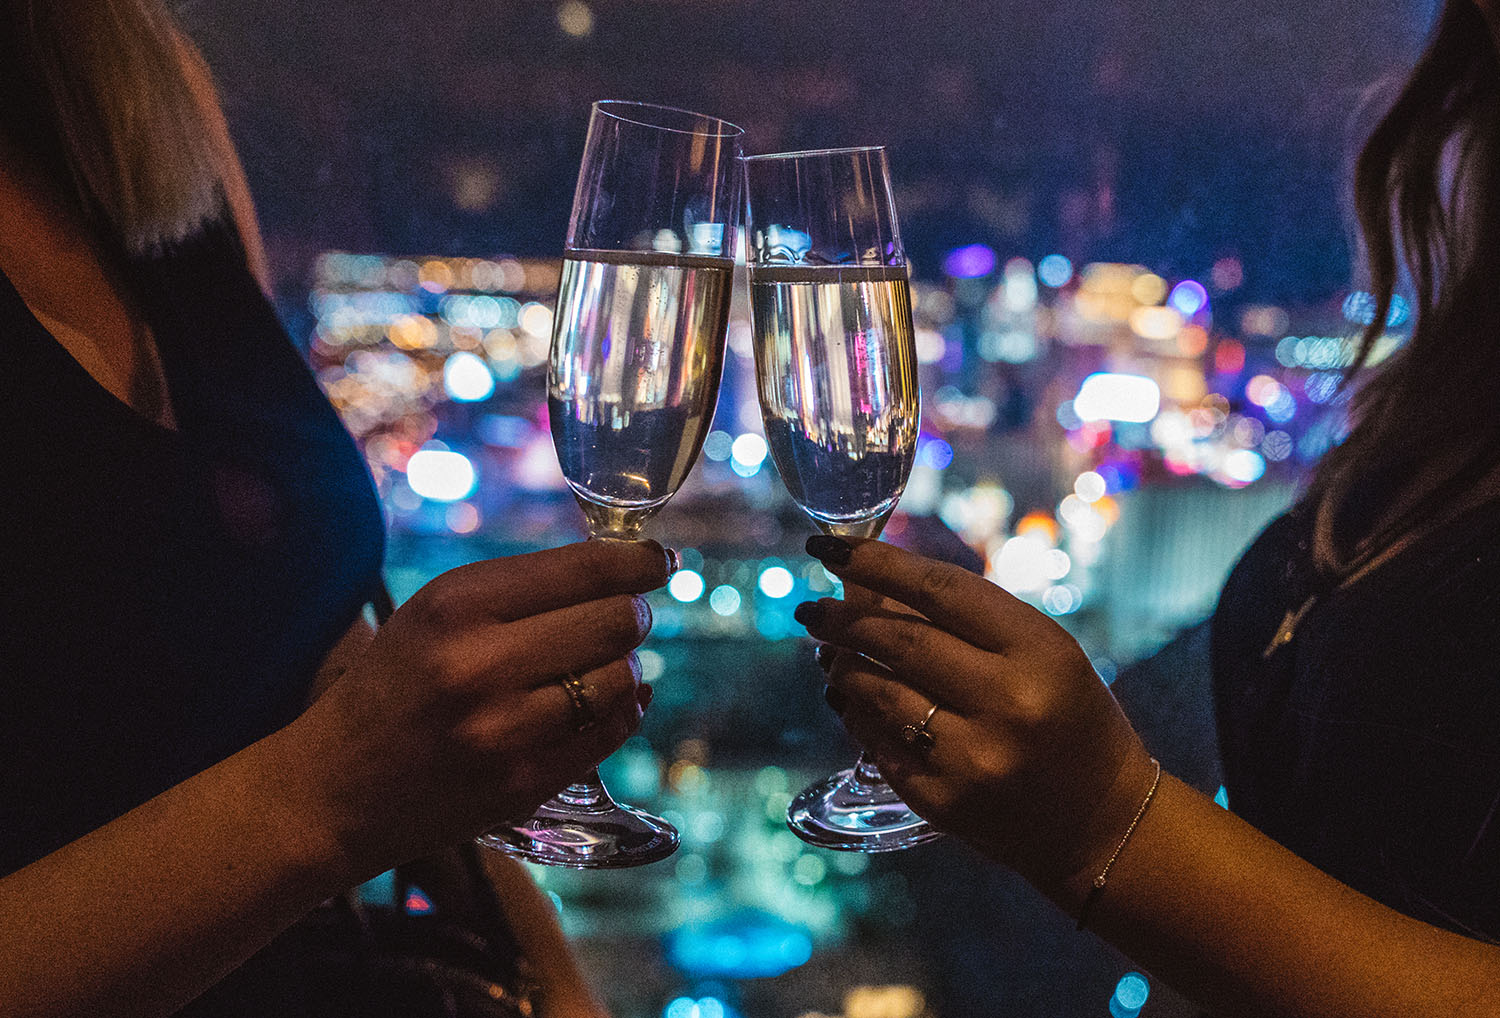 Champagne toast at Delano Skyfall Lounge in Las Vegas